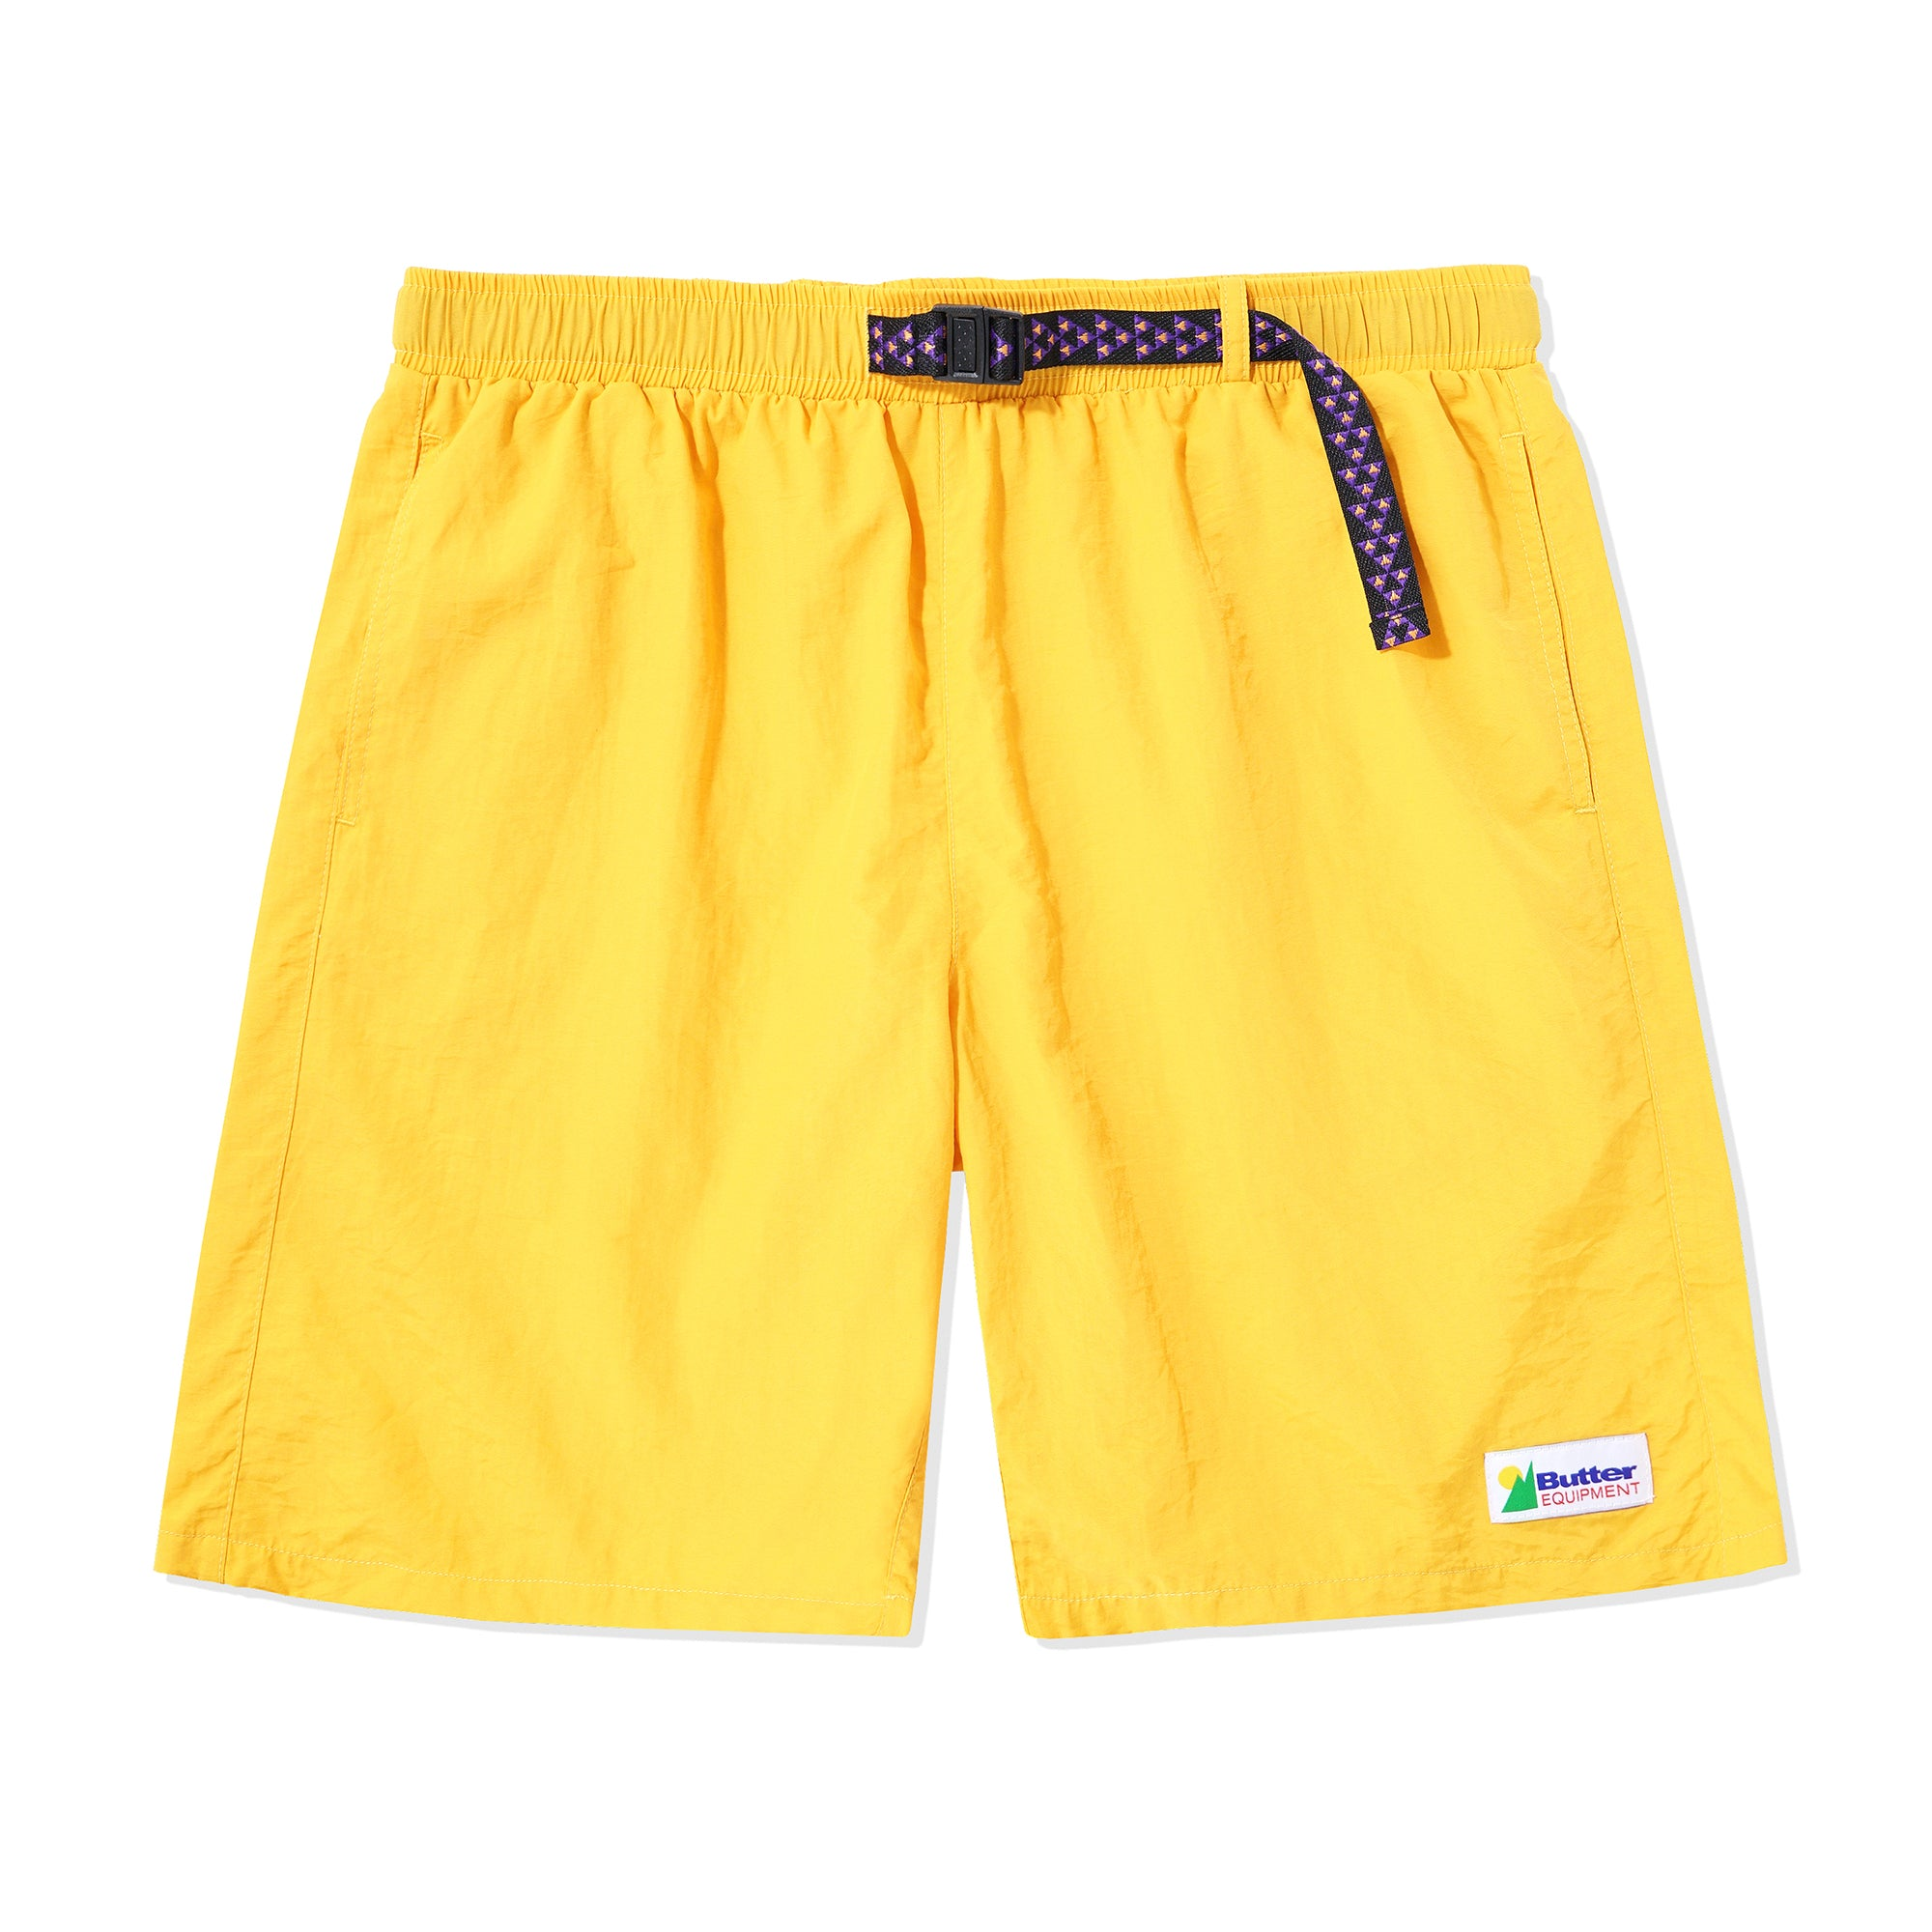 Butter Goods Equipment Shorts Product Photo #1